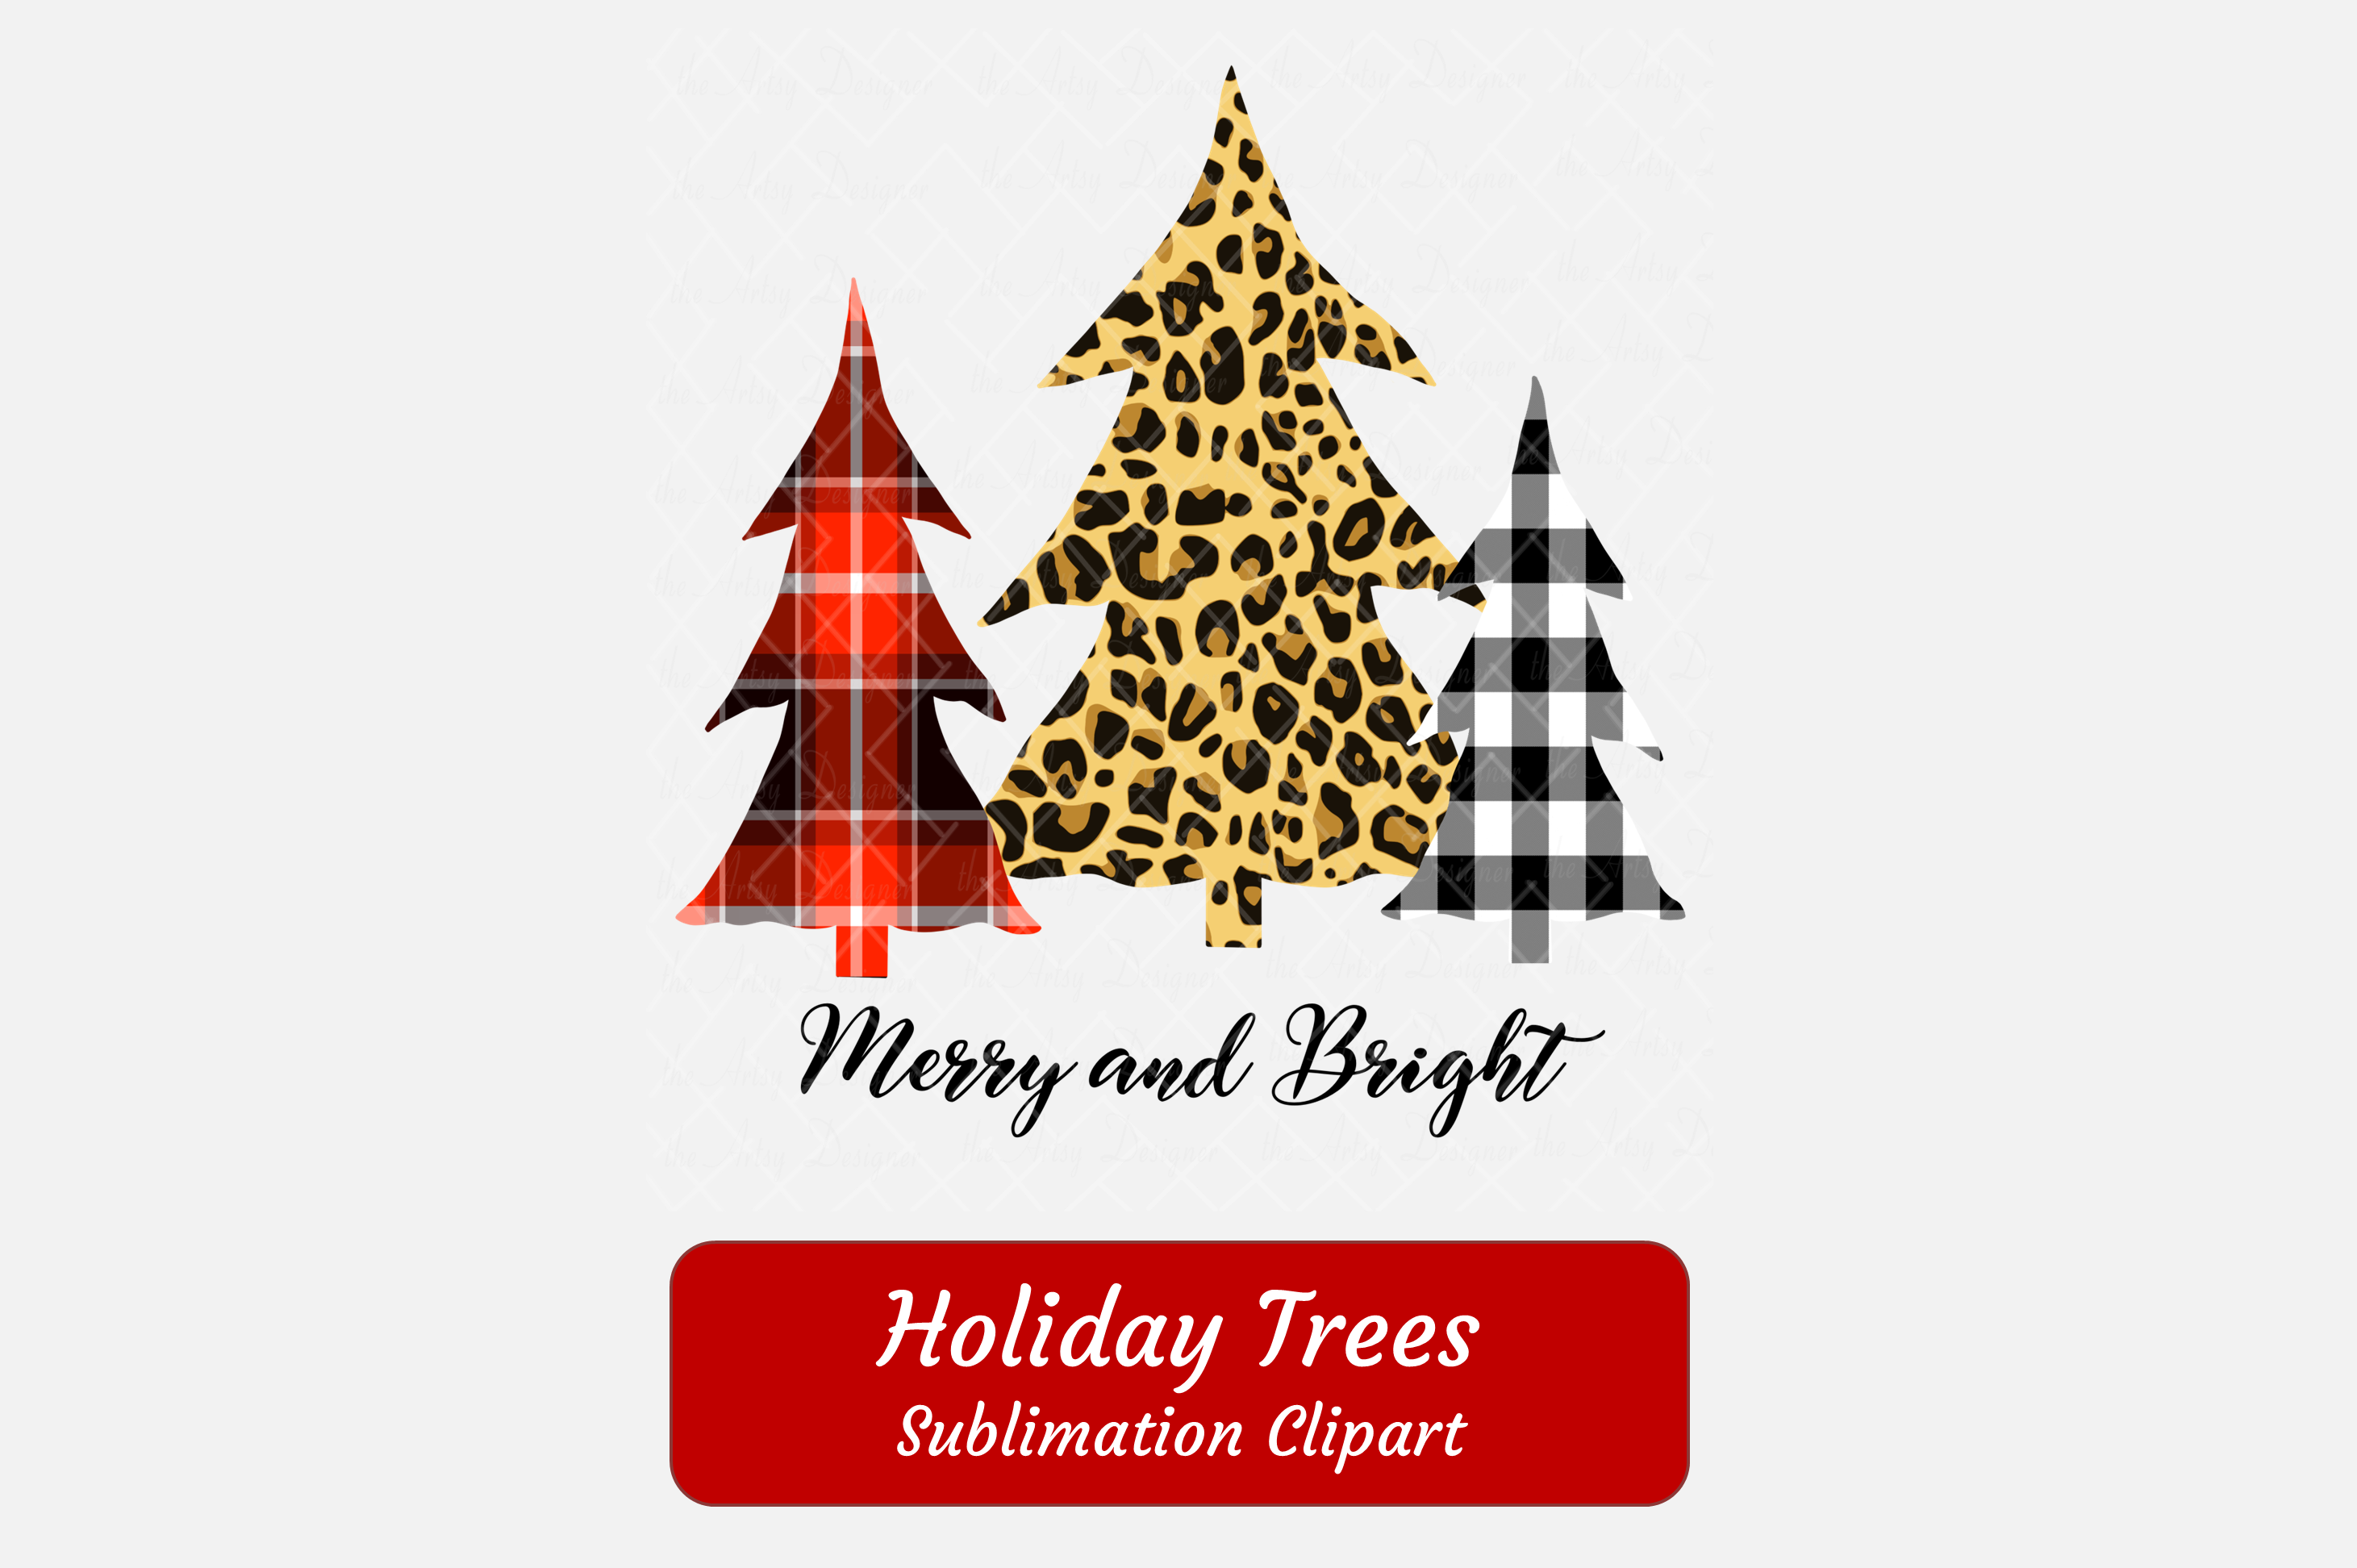 Merry and Bright Plaid Leopard Print Christmas Trees ClipArt example image 2